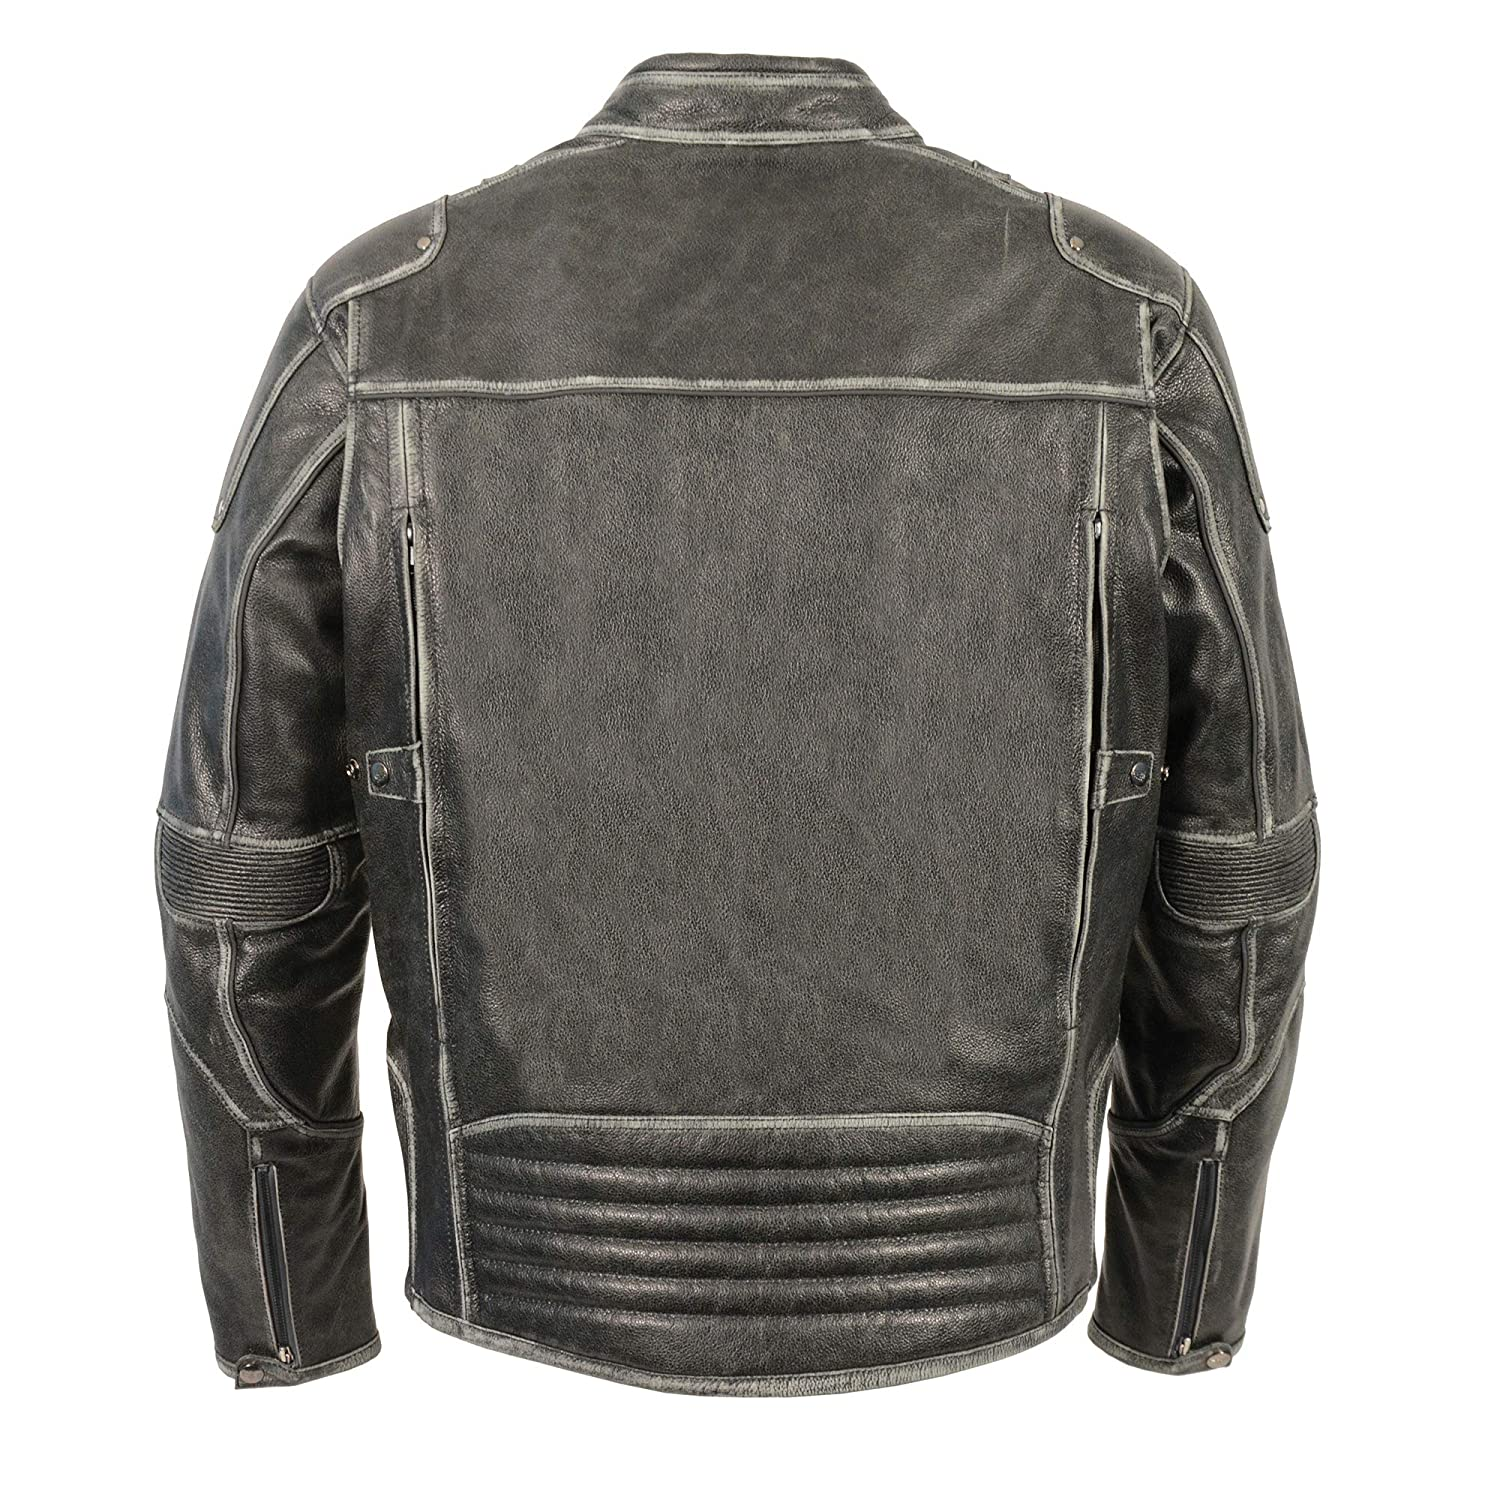 724fc8e10 Men's Vintage Distressed Grey Leather Scooter Jacket w/Heavy Venting  Throughout (Large)